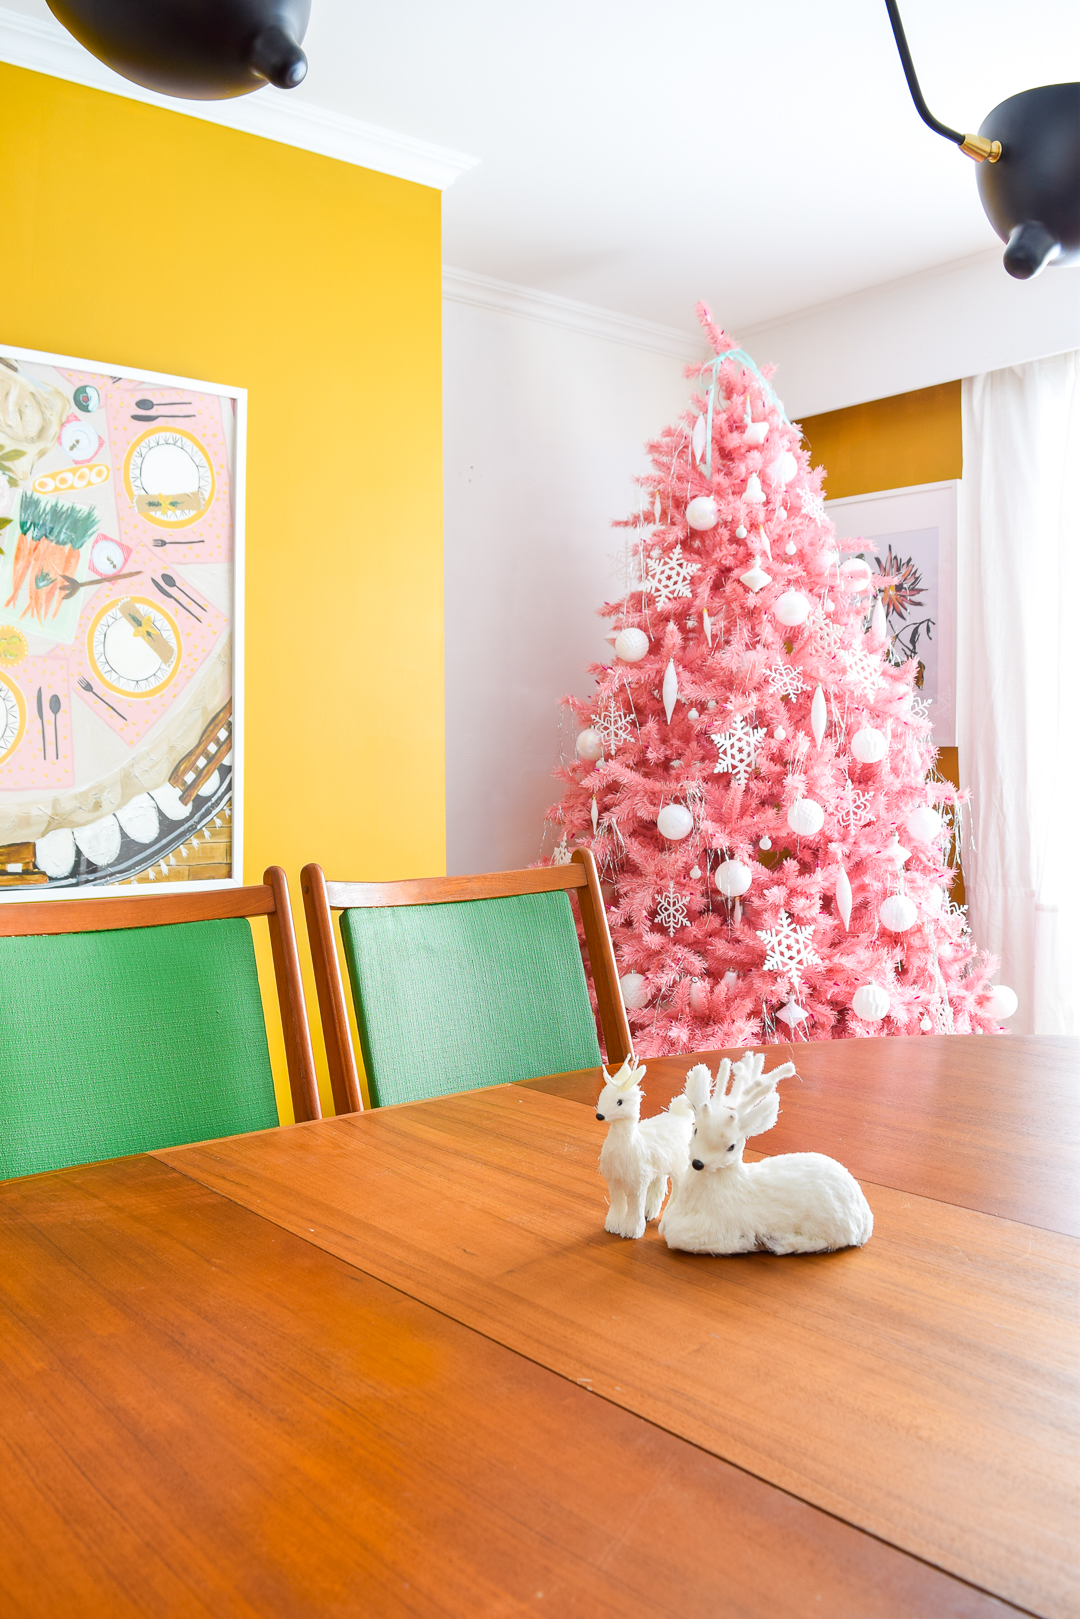 Come for a retro inspired Christmas home tour and check out our dining room, living room, entryway, and home office! Through sheer force of colour, pattern and decor, I am determined to make this pace feel like home for the holidays.